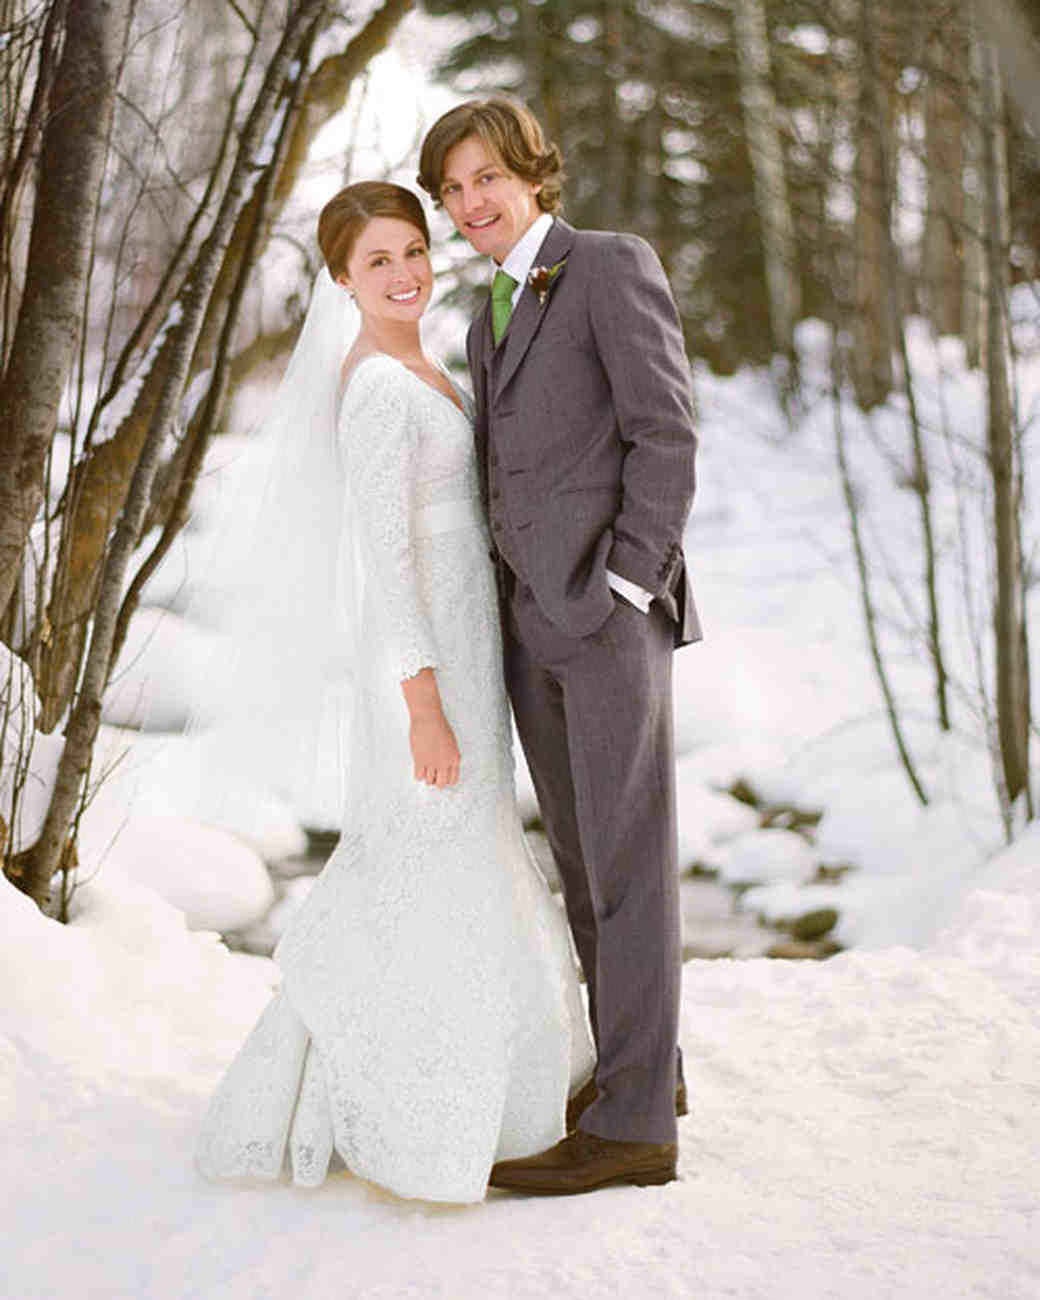 Winter Weddings: A Rustic Winter Destination Wedding In Colorado